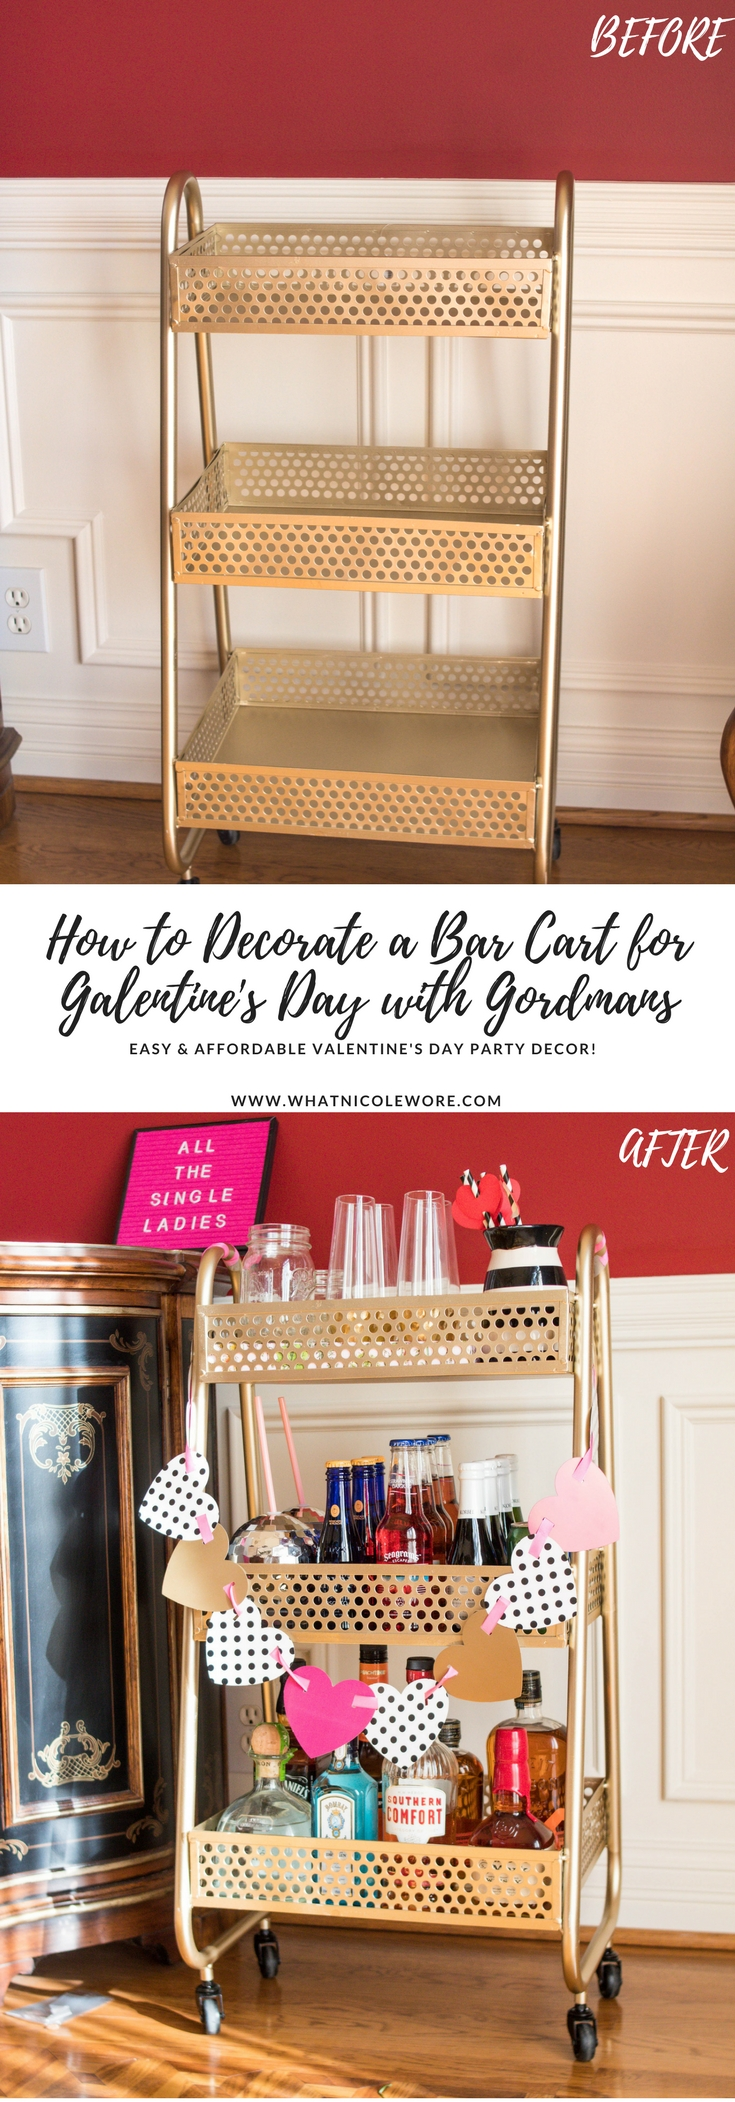 How to Decorate a Bar Cart for Galentine's Day with Gordmans